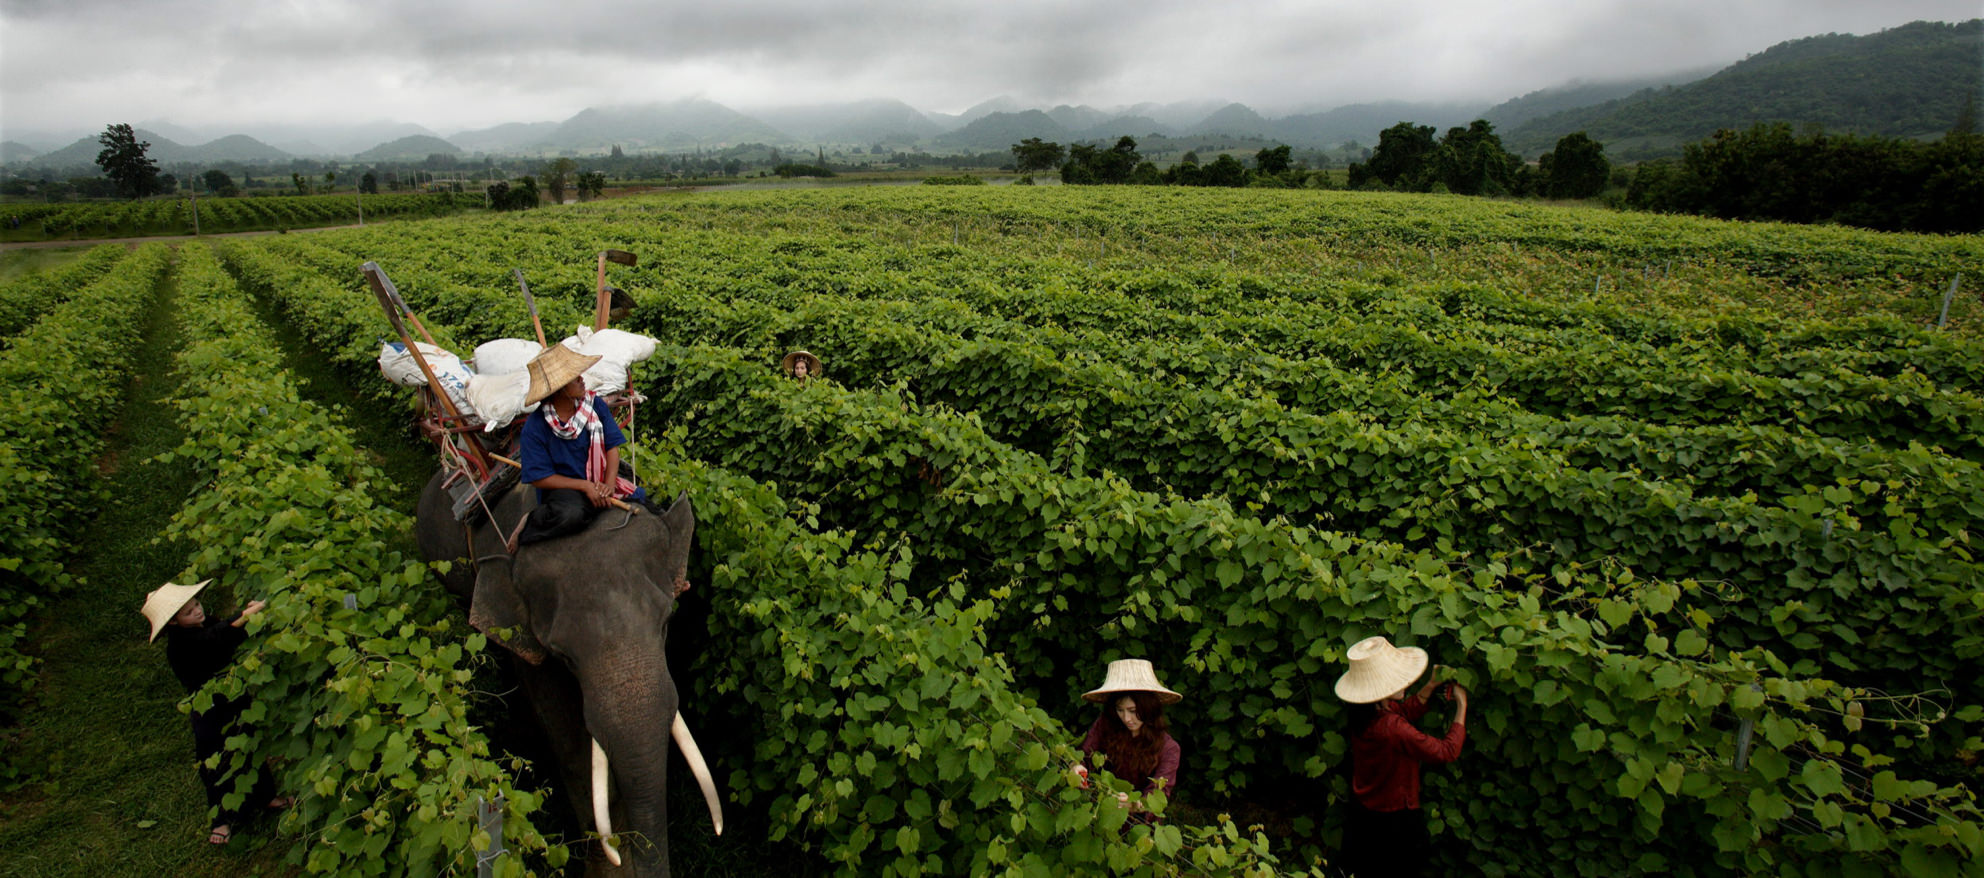 explore-huahin-hill-vineyard-1